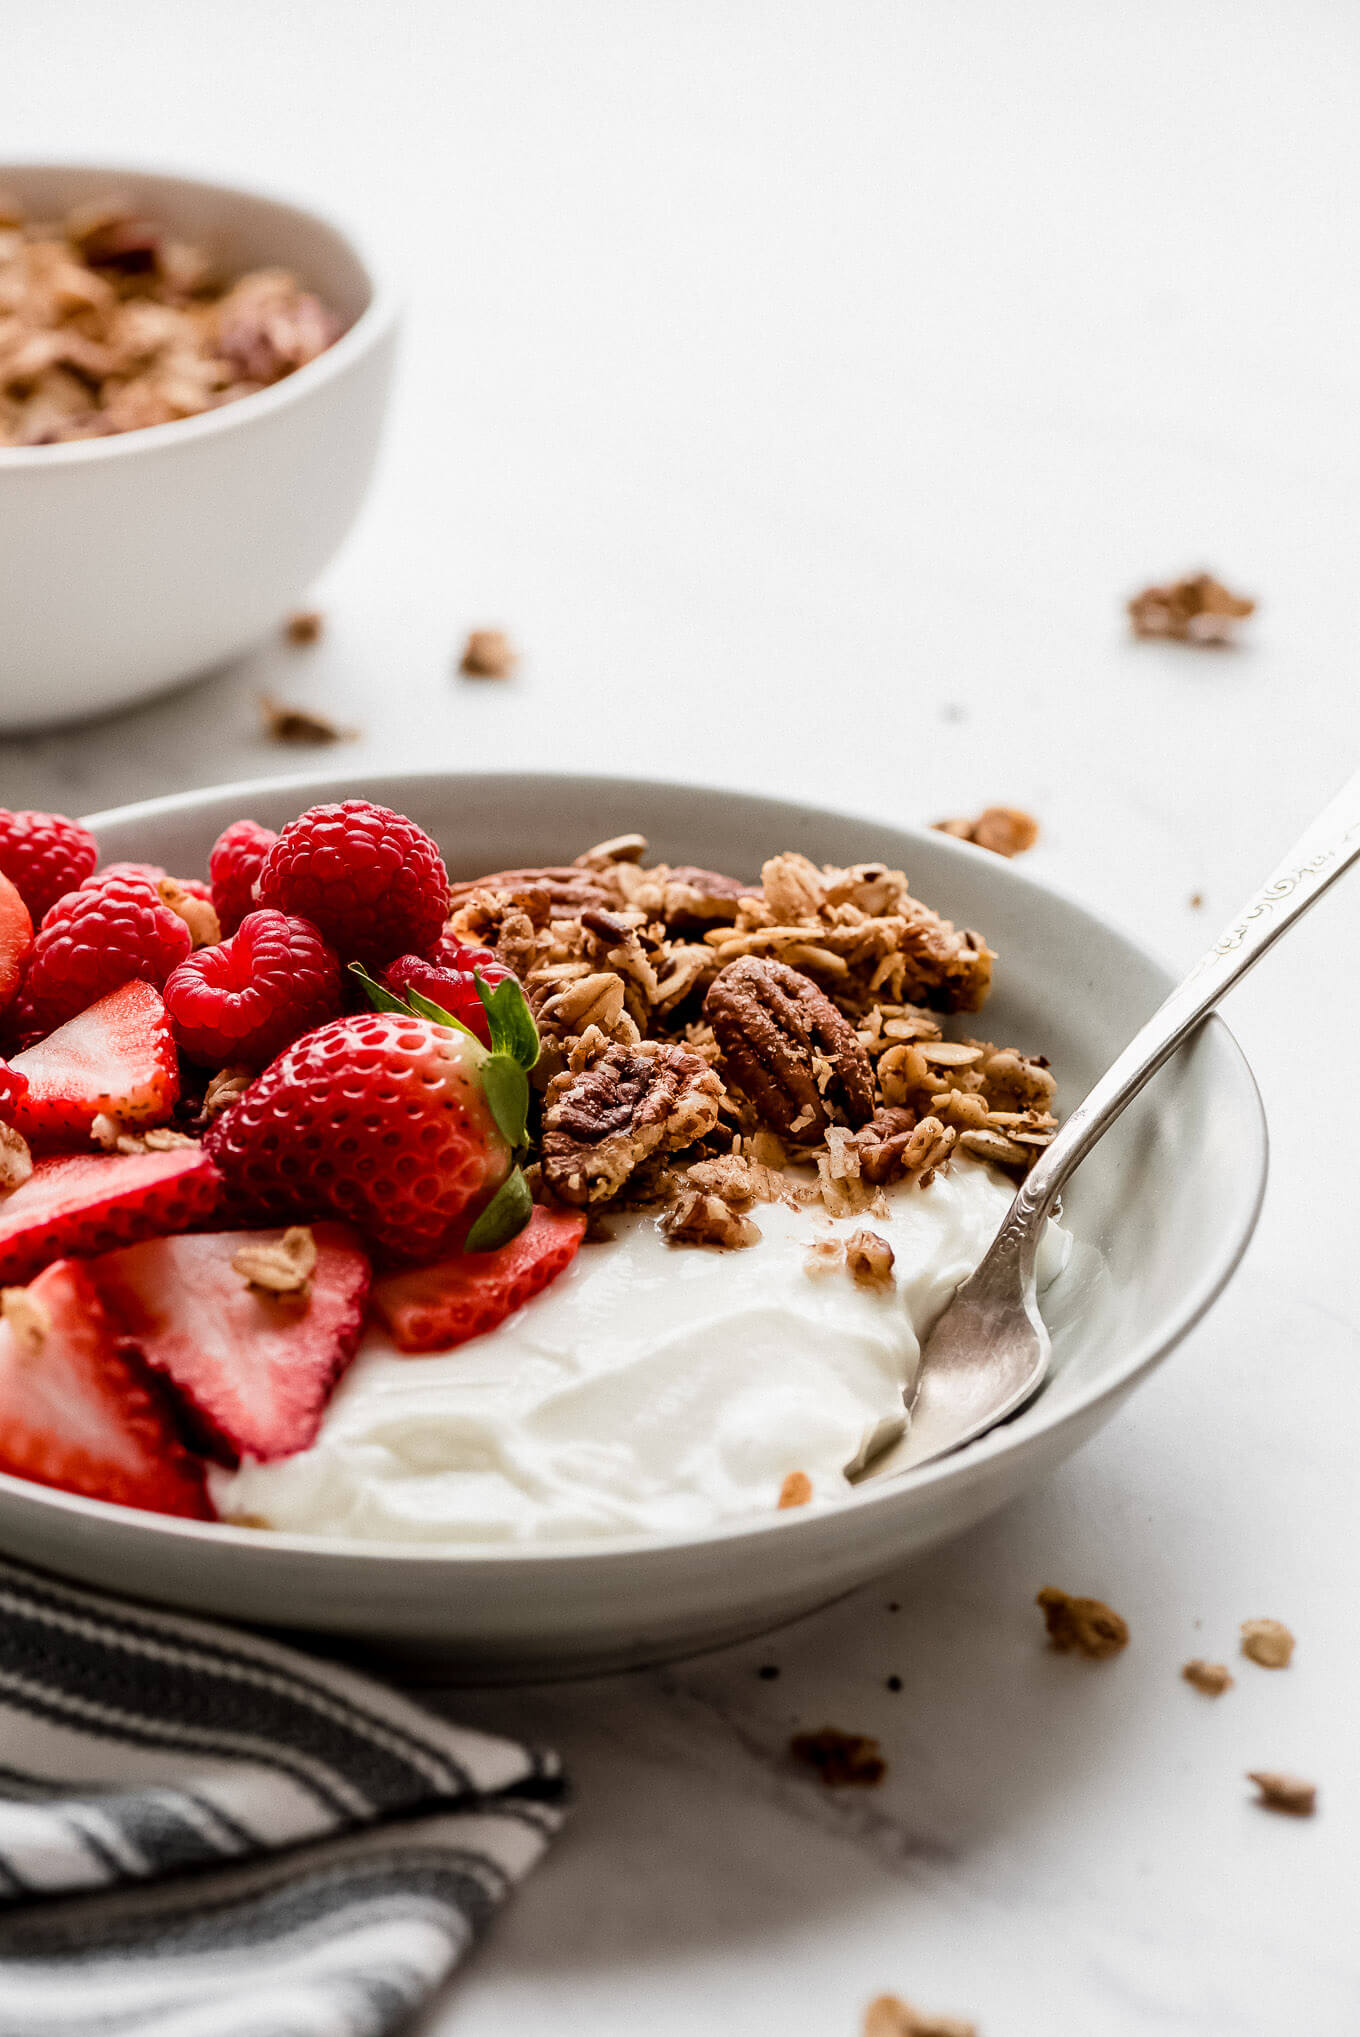 A bowl of Greek yogurt topped with strawberries, raspberries, and granola.